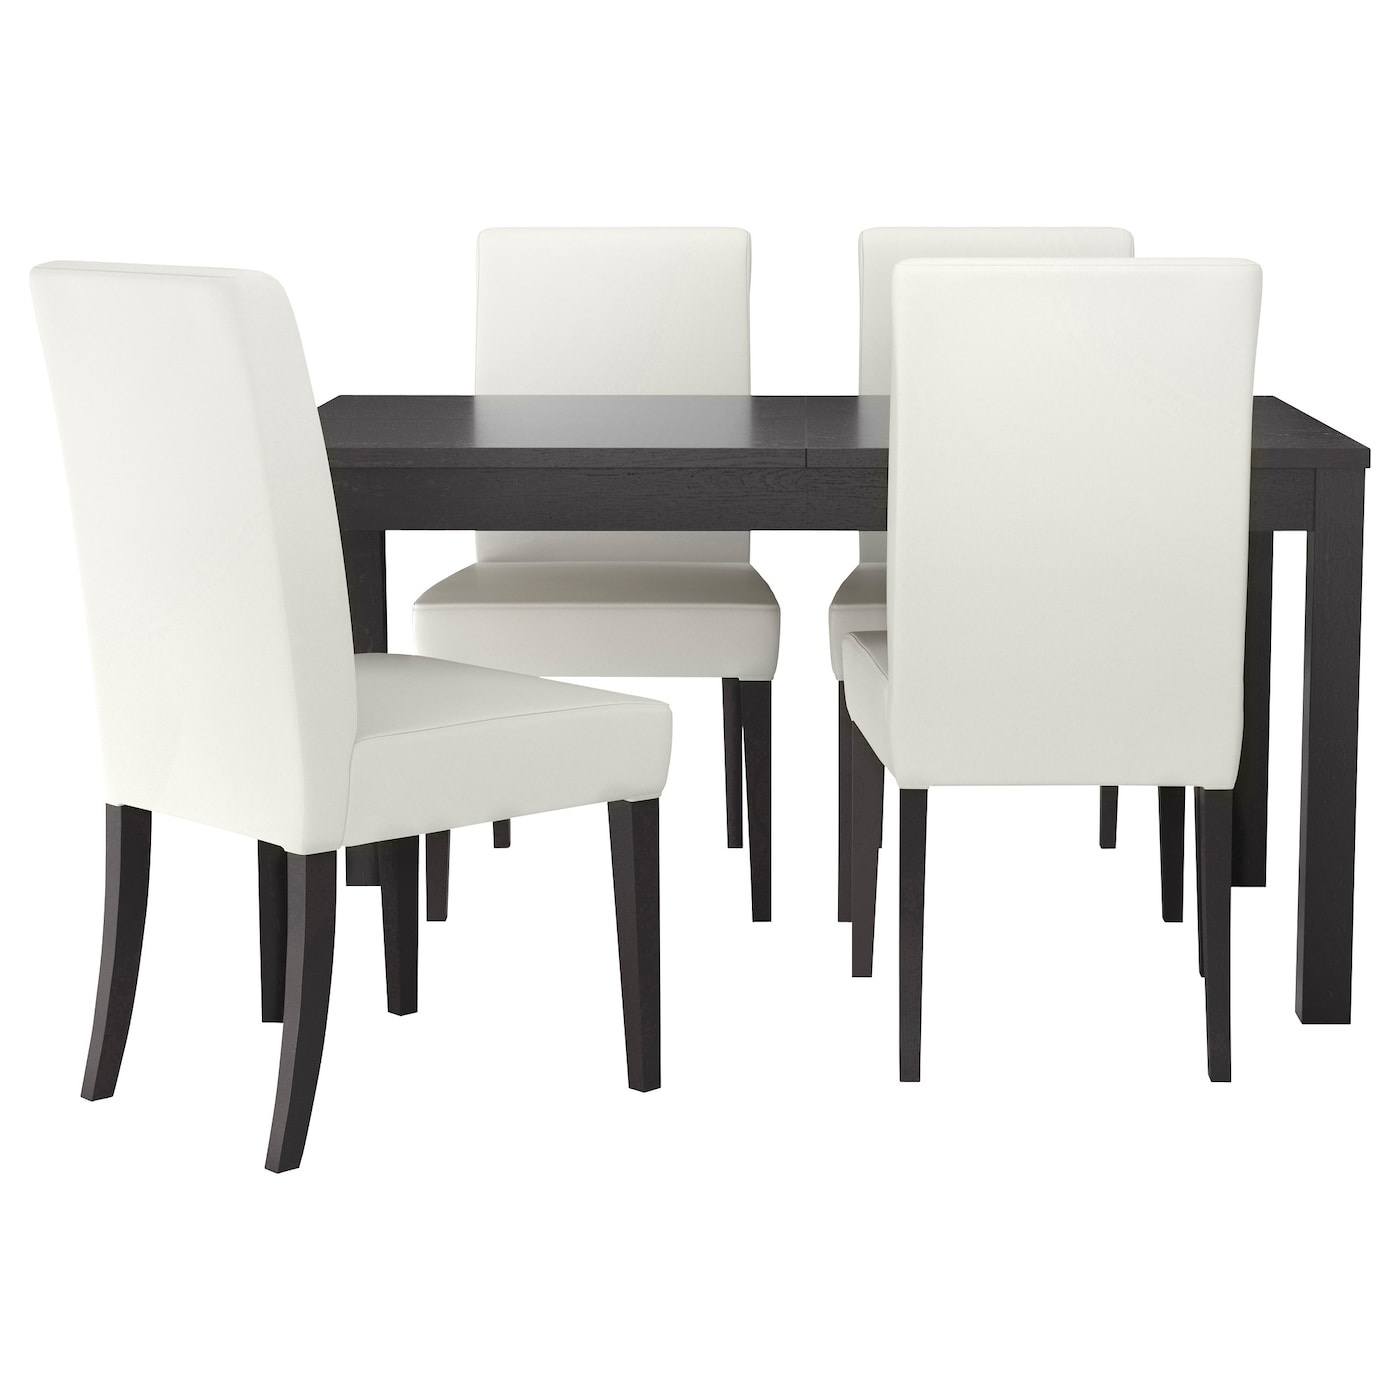 4 seater dining table chairs ikea